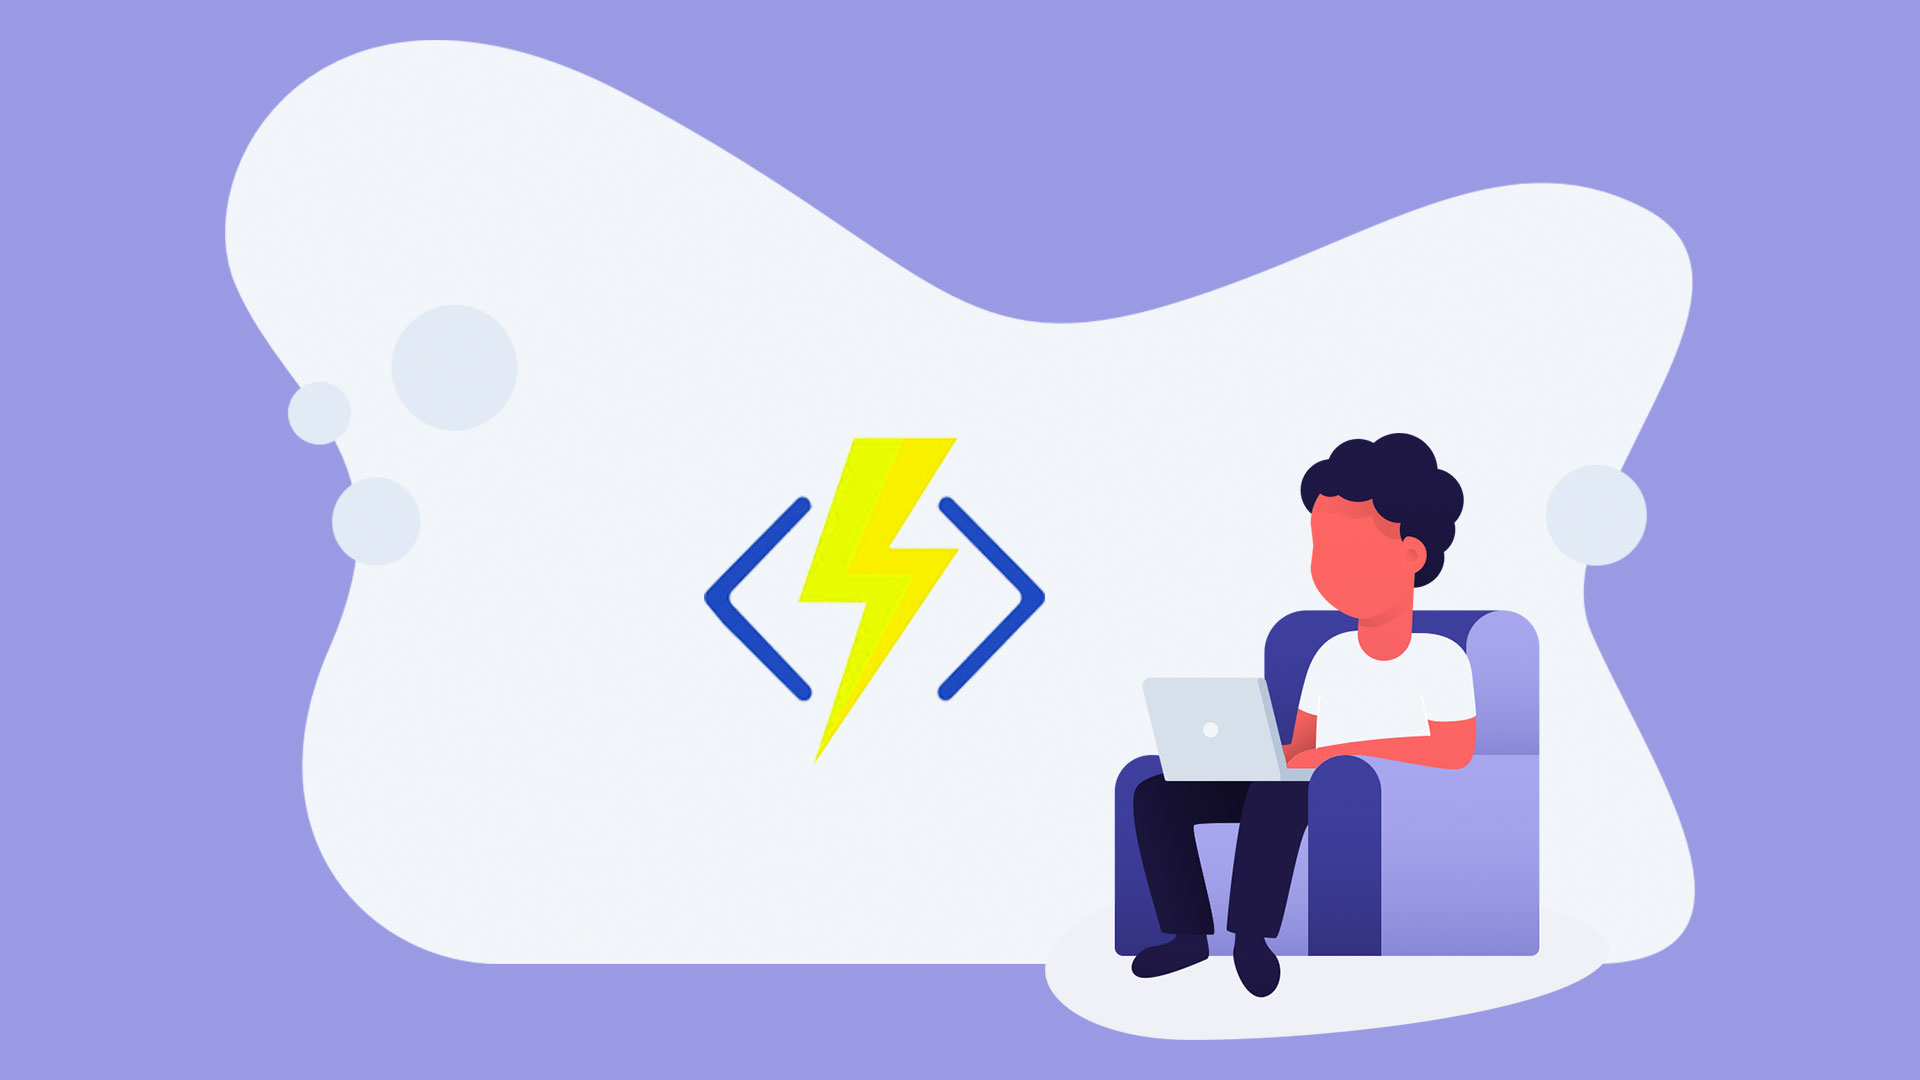 ⚡ Practical Guide to Serverless Microsoft Azure Functions